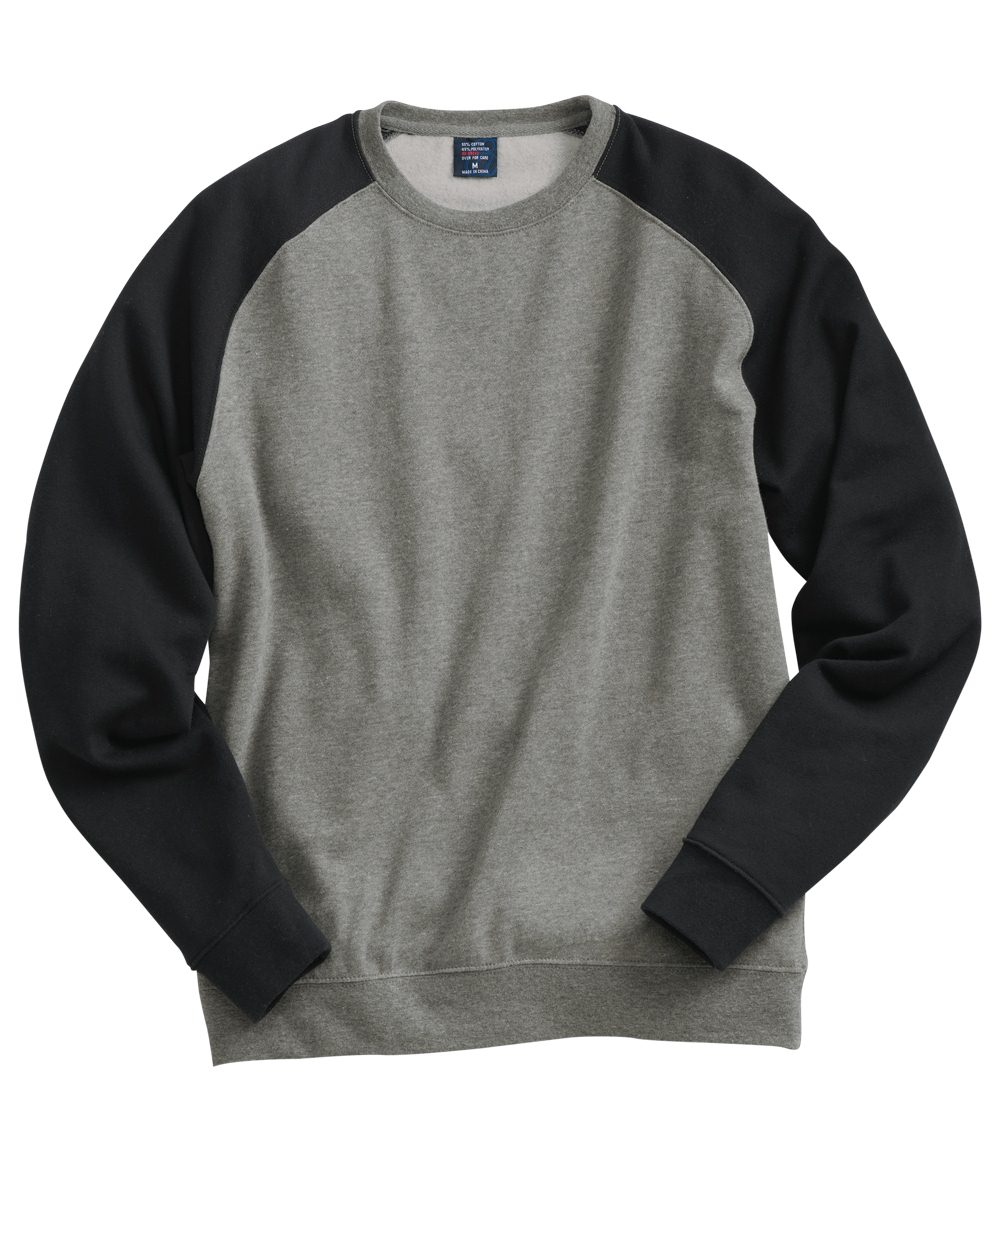 Independent Trading Co. Fitted Raglan Crewneck Sweatshirt - IND30RC